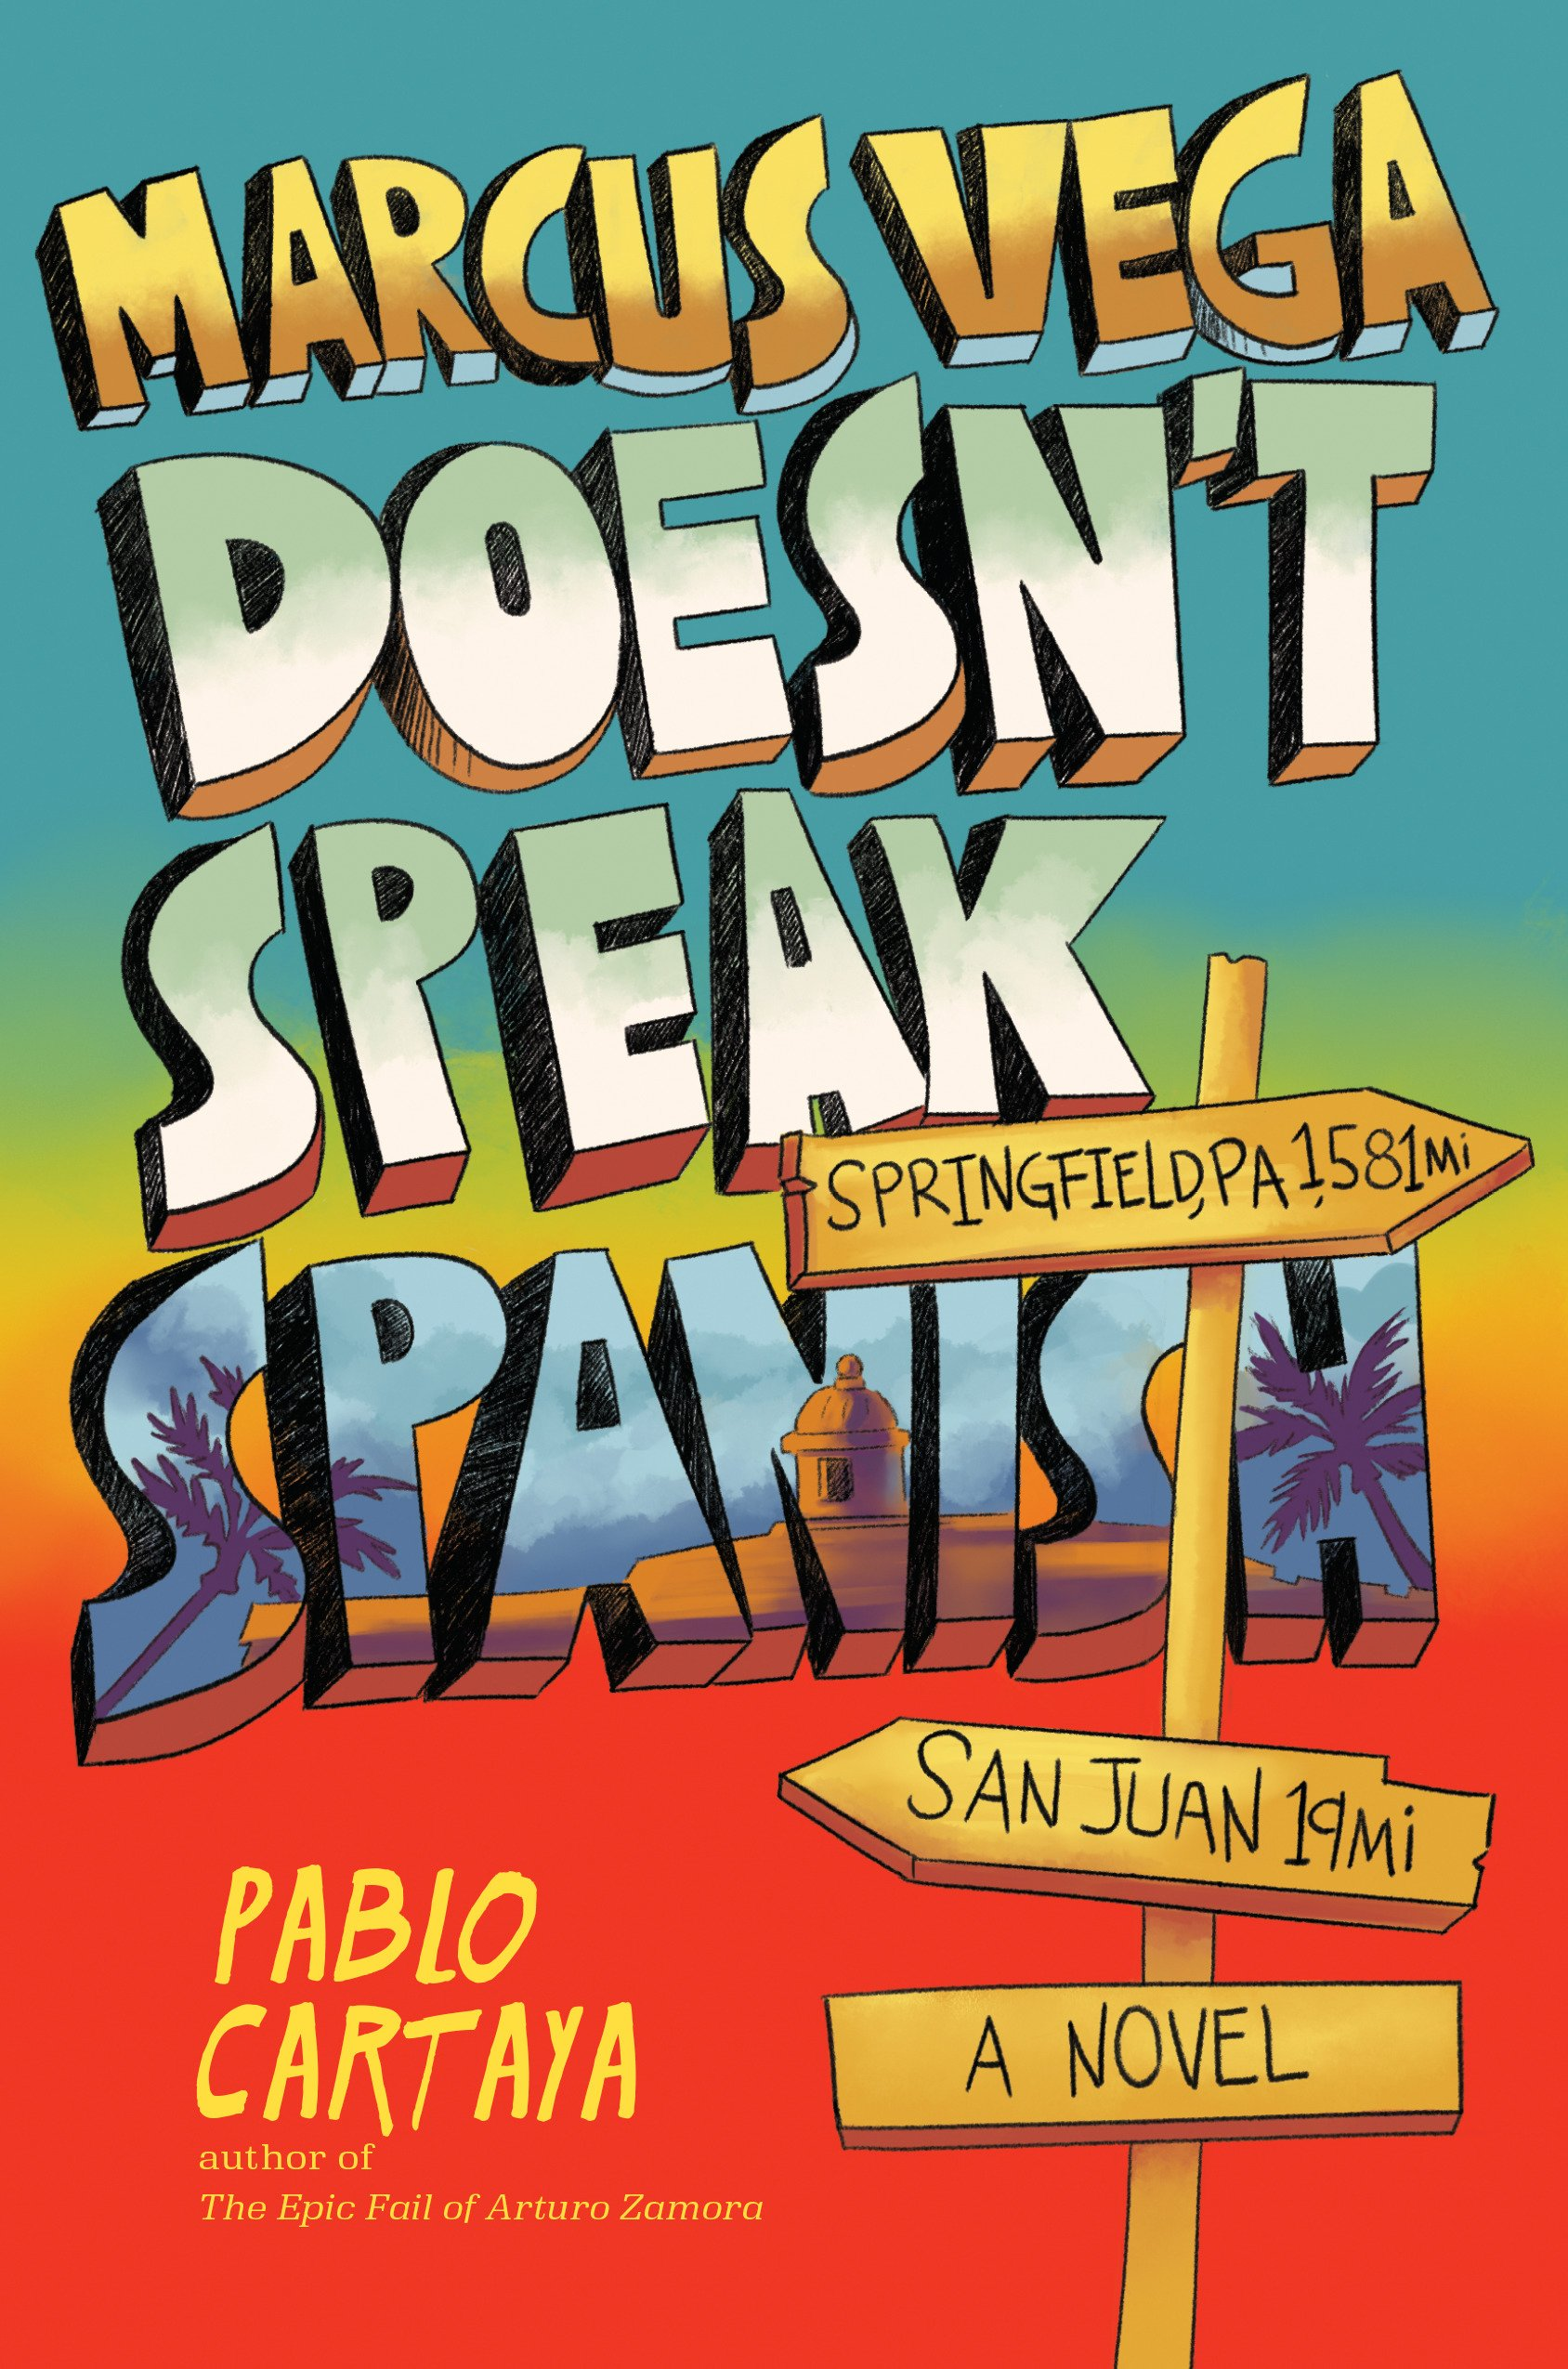 Marcus Vega Doesn't Speak Spanish by Pablo Cartaya | SLJ Review